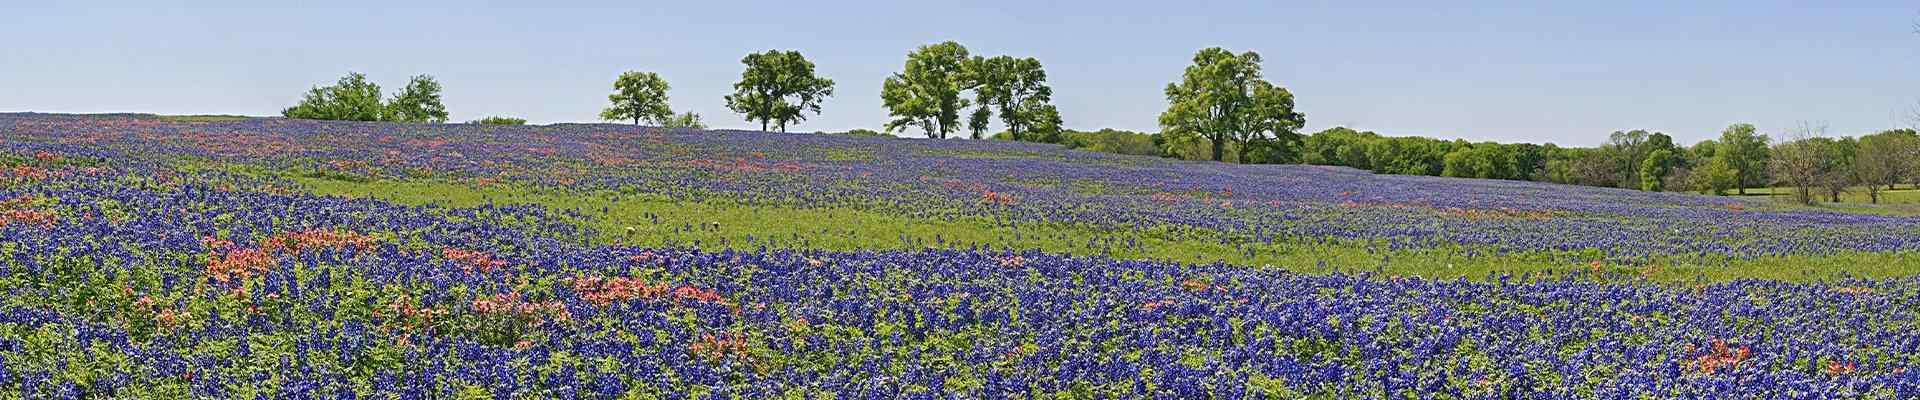 a field of blue bell flowers in copper canyon texas